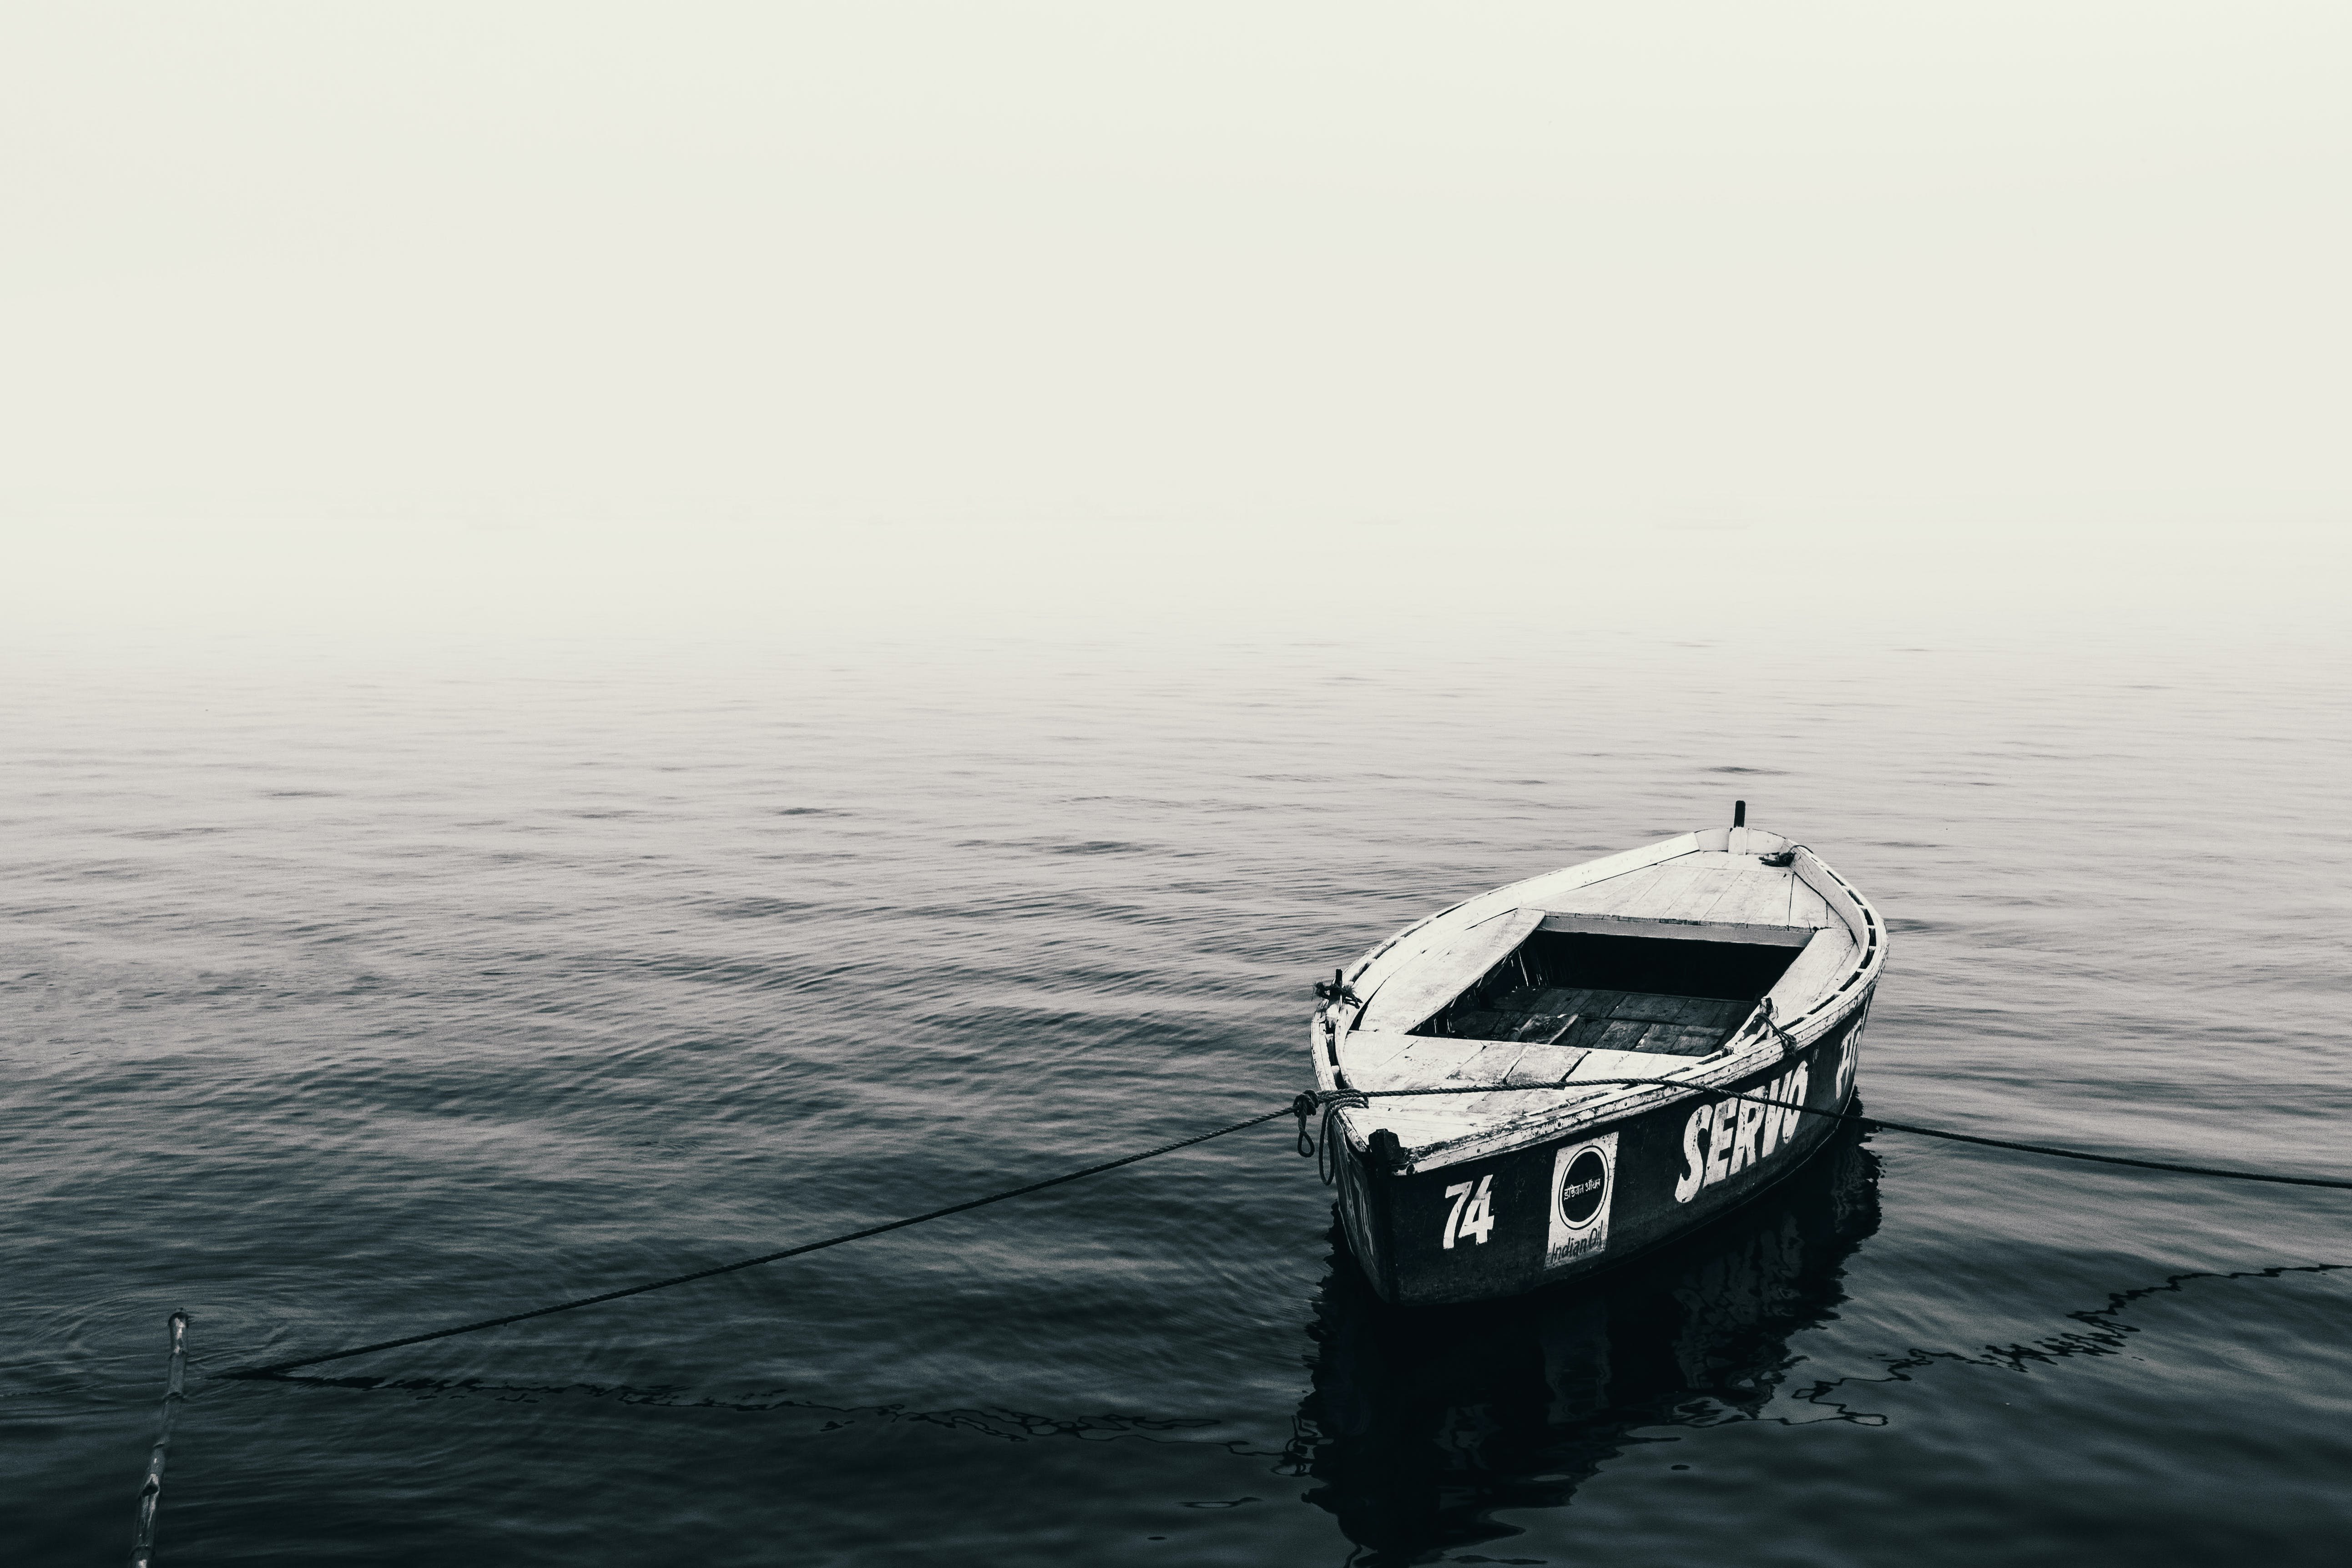 Free stock photo of black, black and white, boat, calm waters